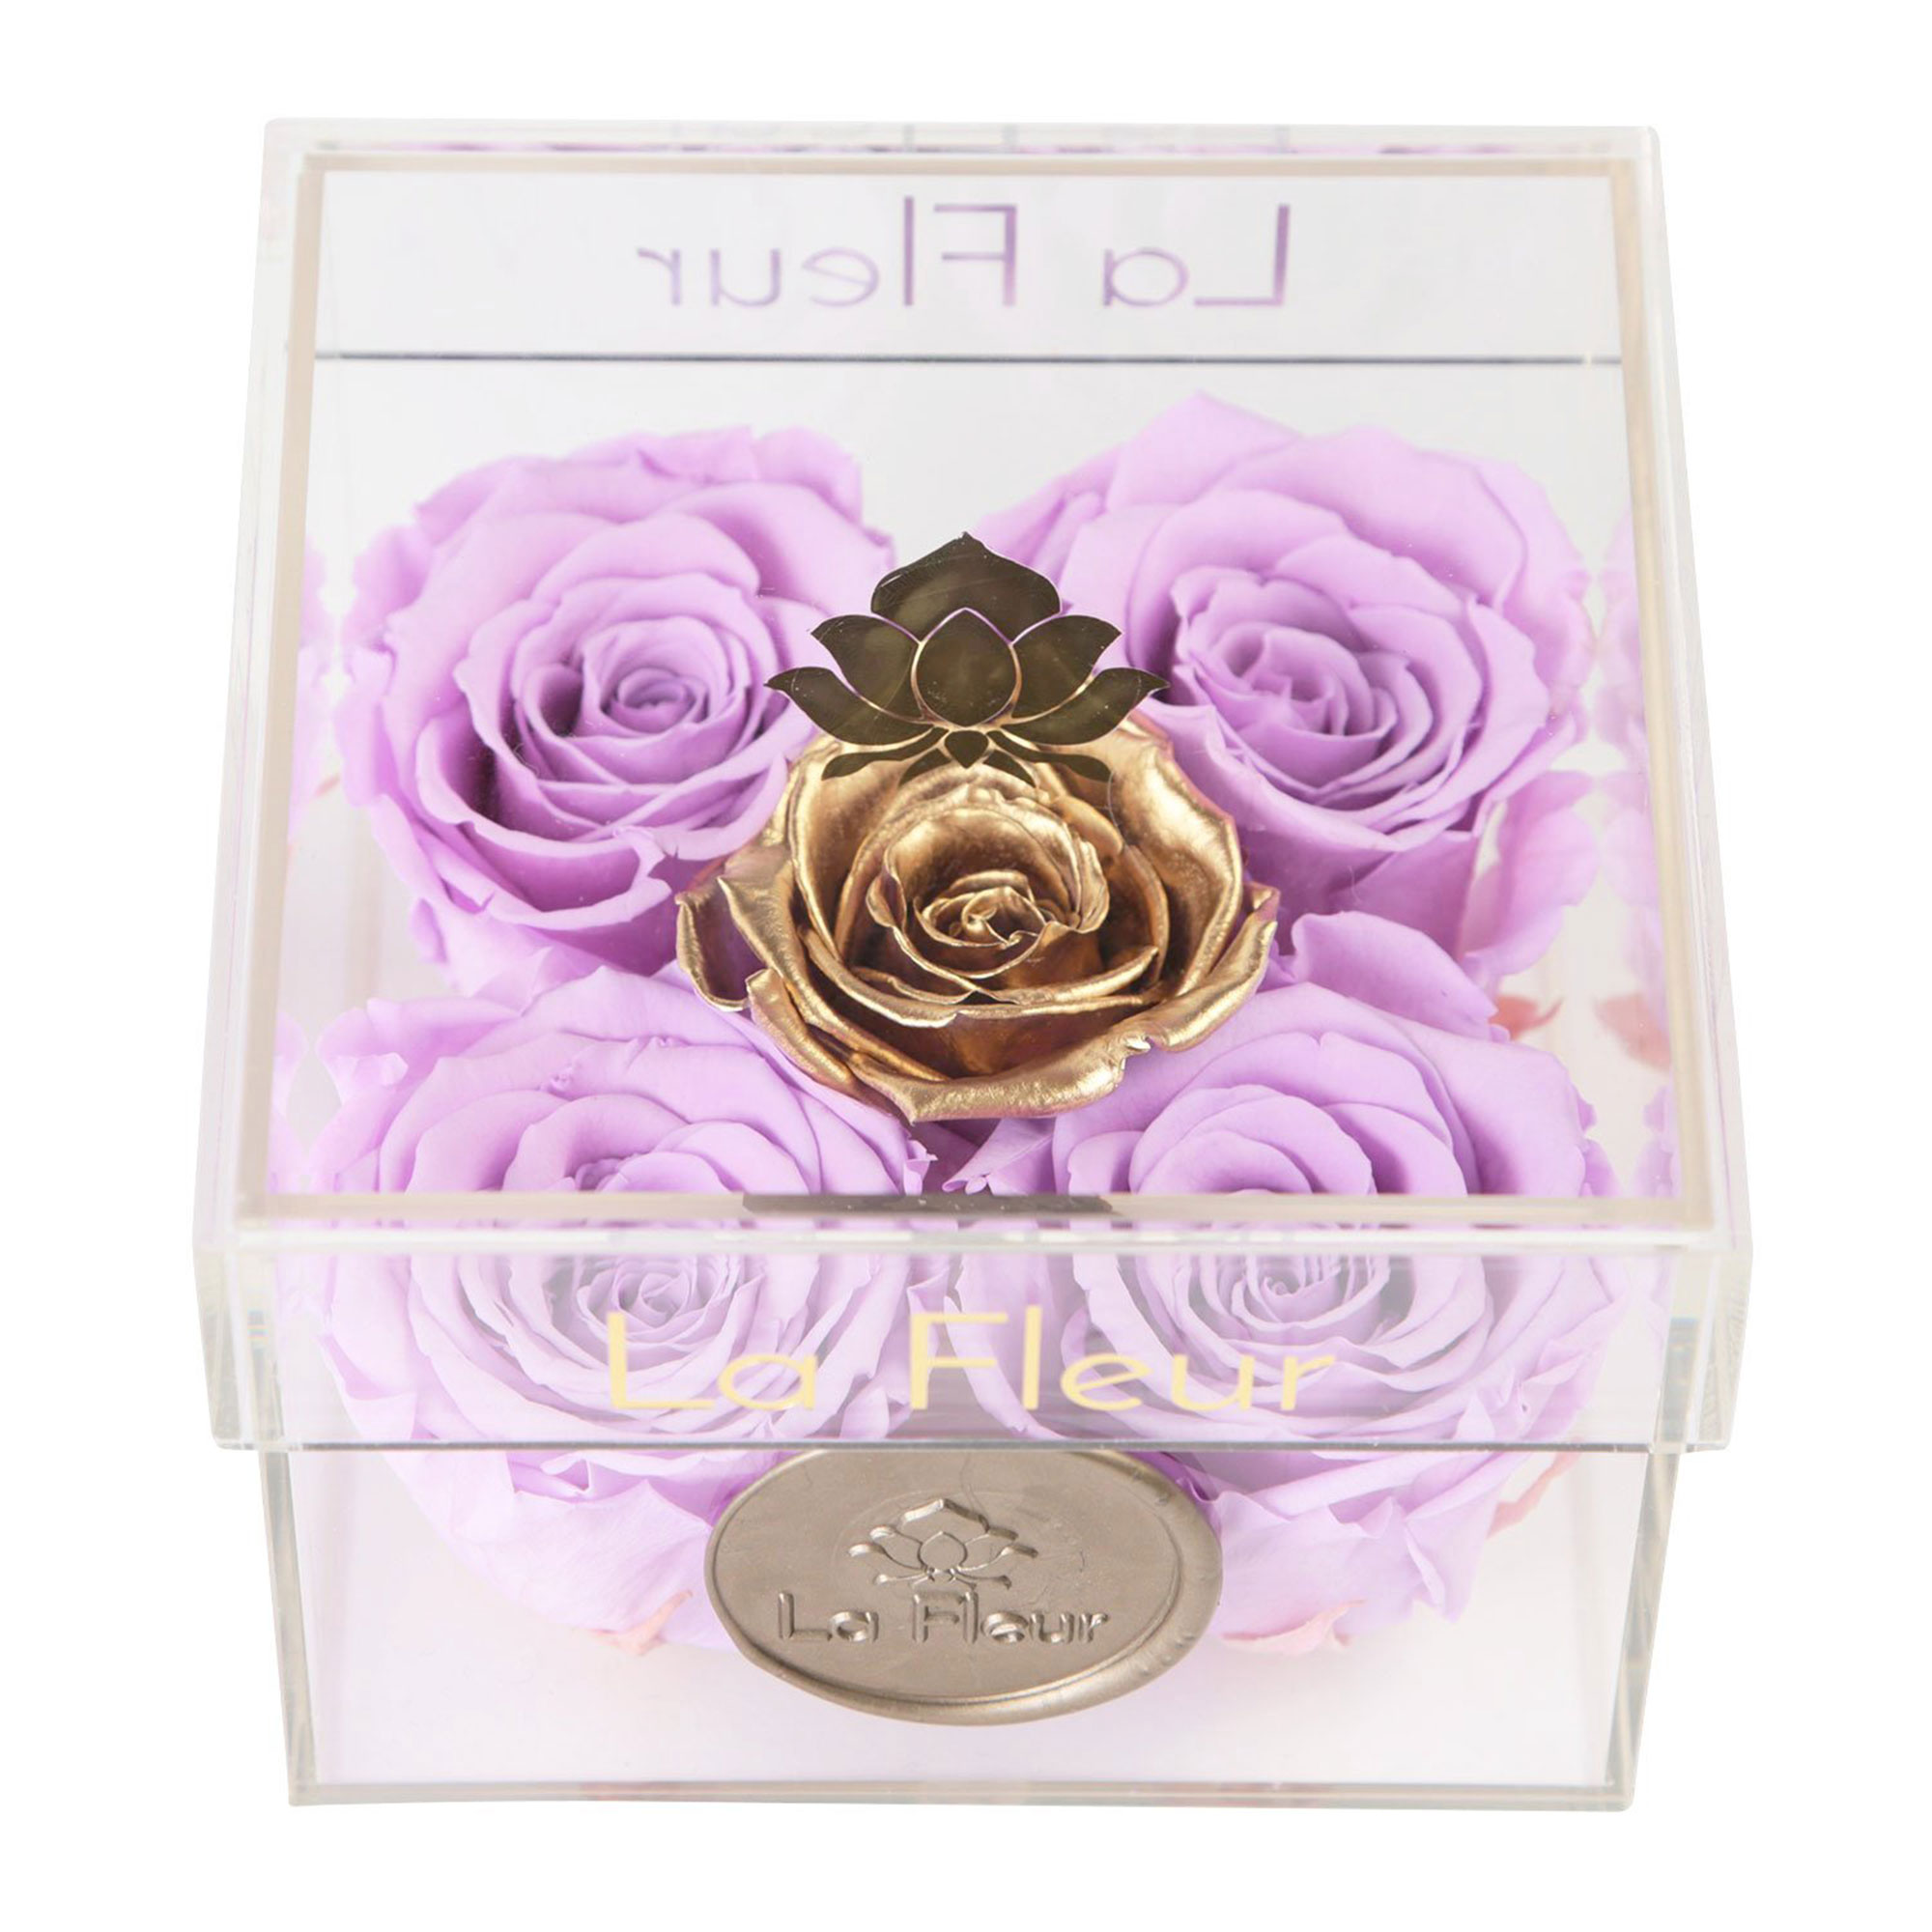 Valentine's Day Gift Guide 2019: Beauty and Fashion Ideas for the Lady in Your Life - Forget about a fresh flower bouquet that lasts a week (at most!). These preserved roses (Kylie Jenner and Cardi B are fans) keep their sweet smell for an entire year.